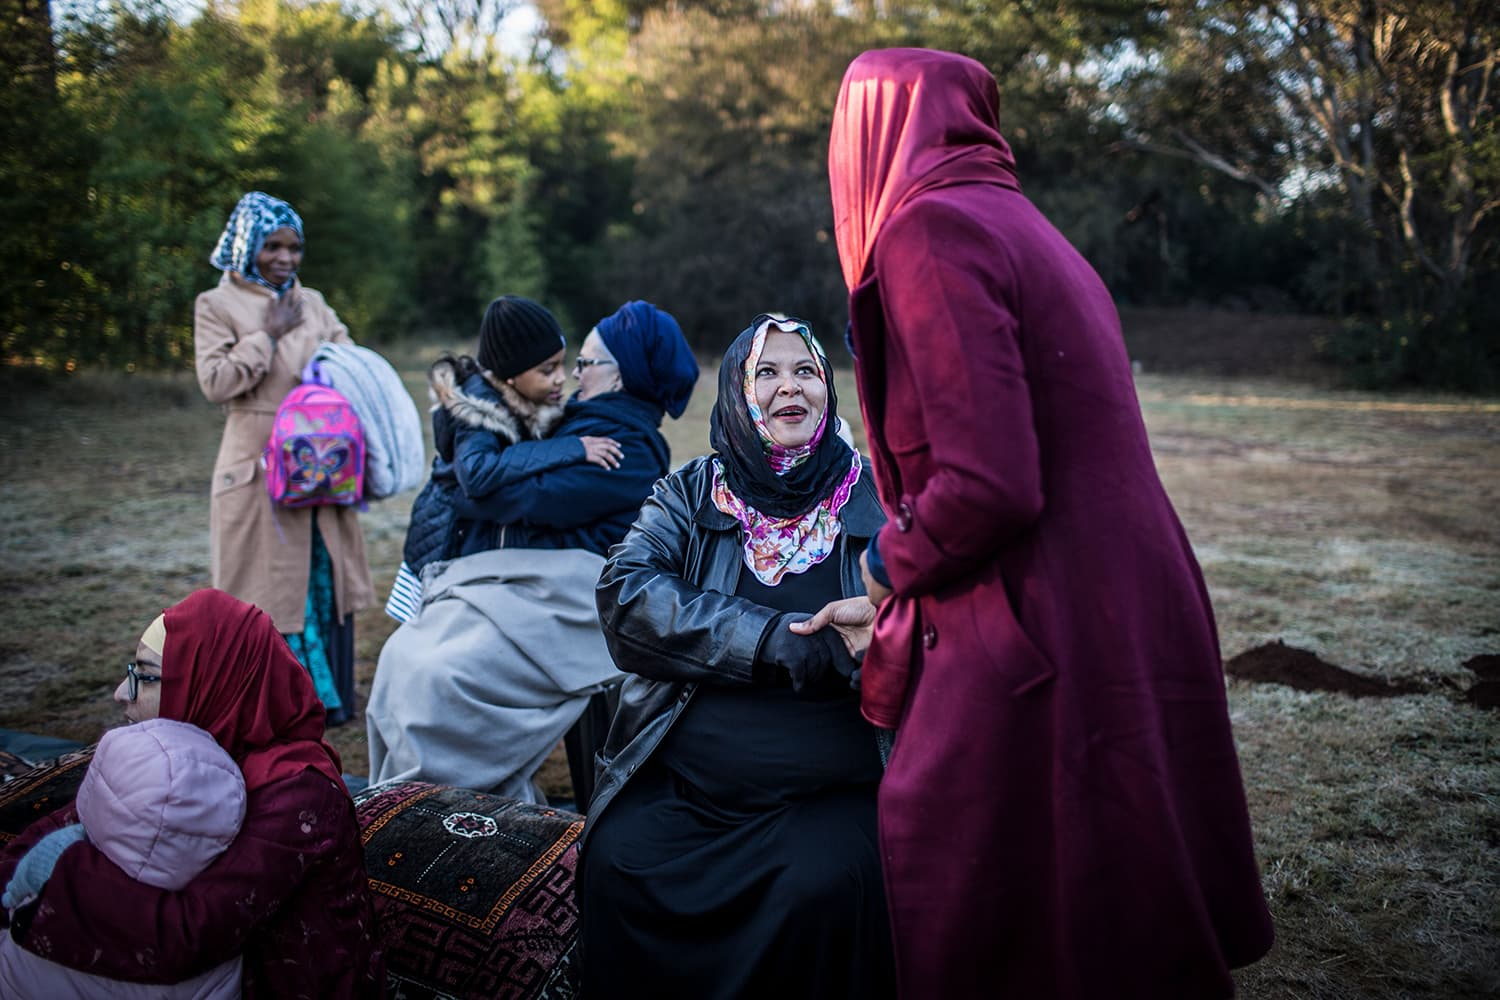 Women greet each other at the Rasooli Masjid in Pretoria, South Africa on the occasion of Eidul Fitr. — AFP